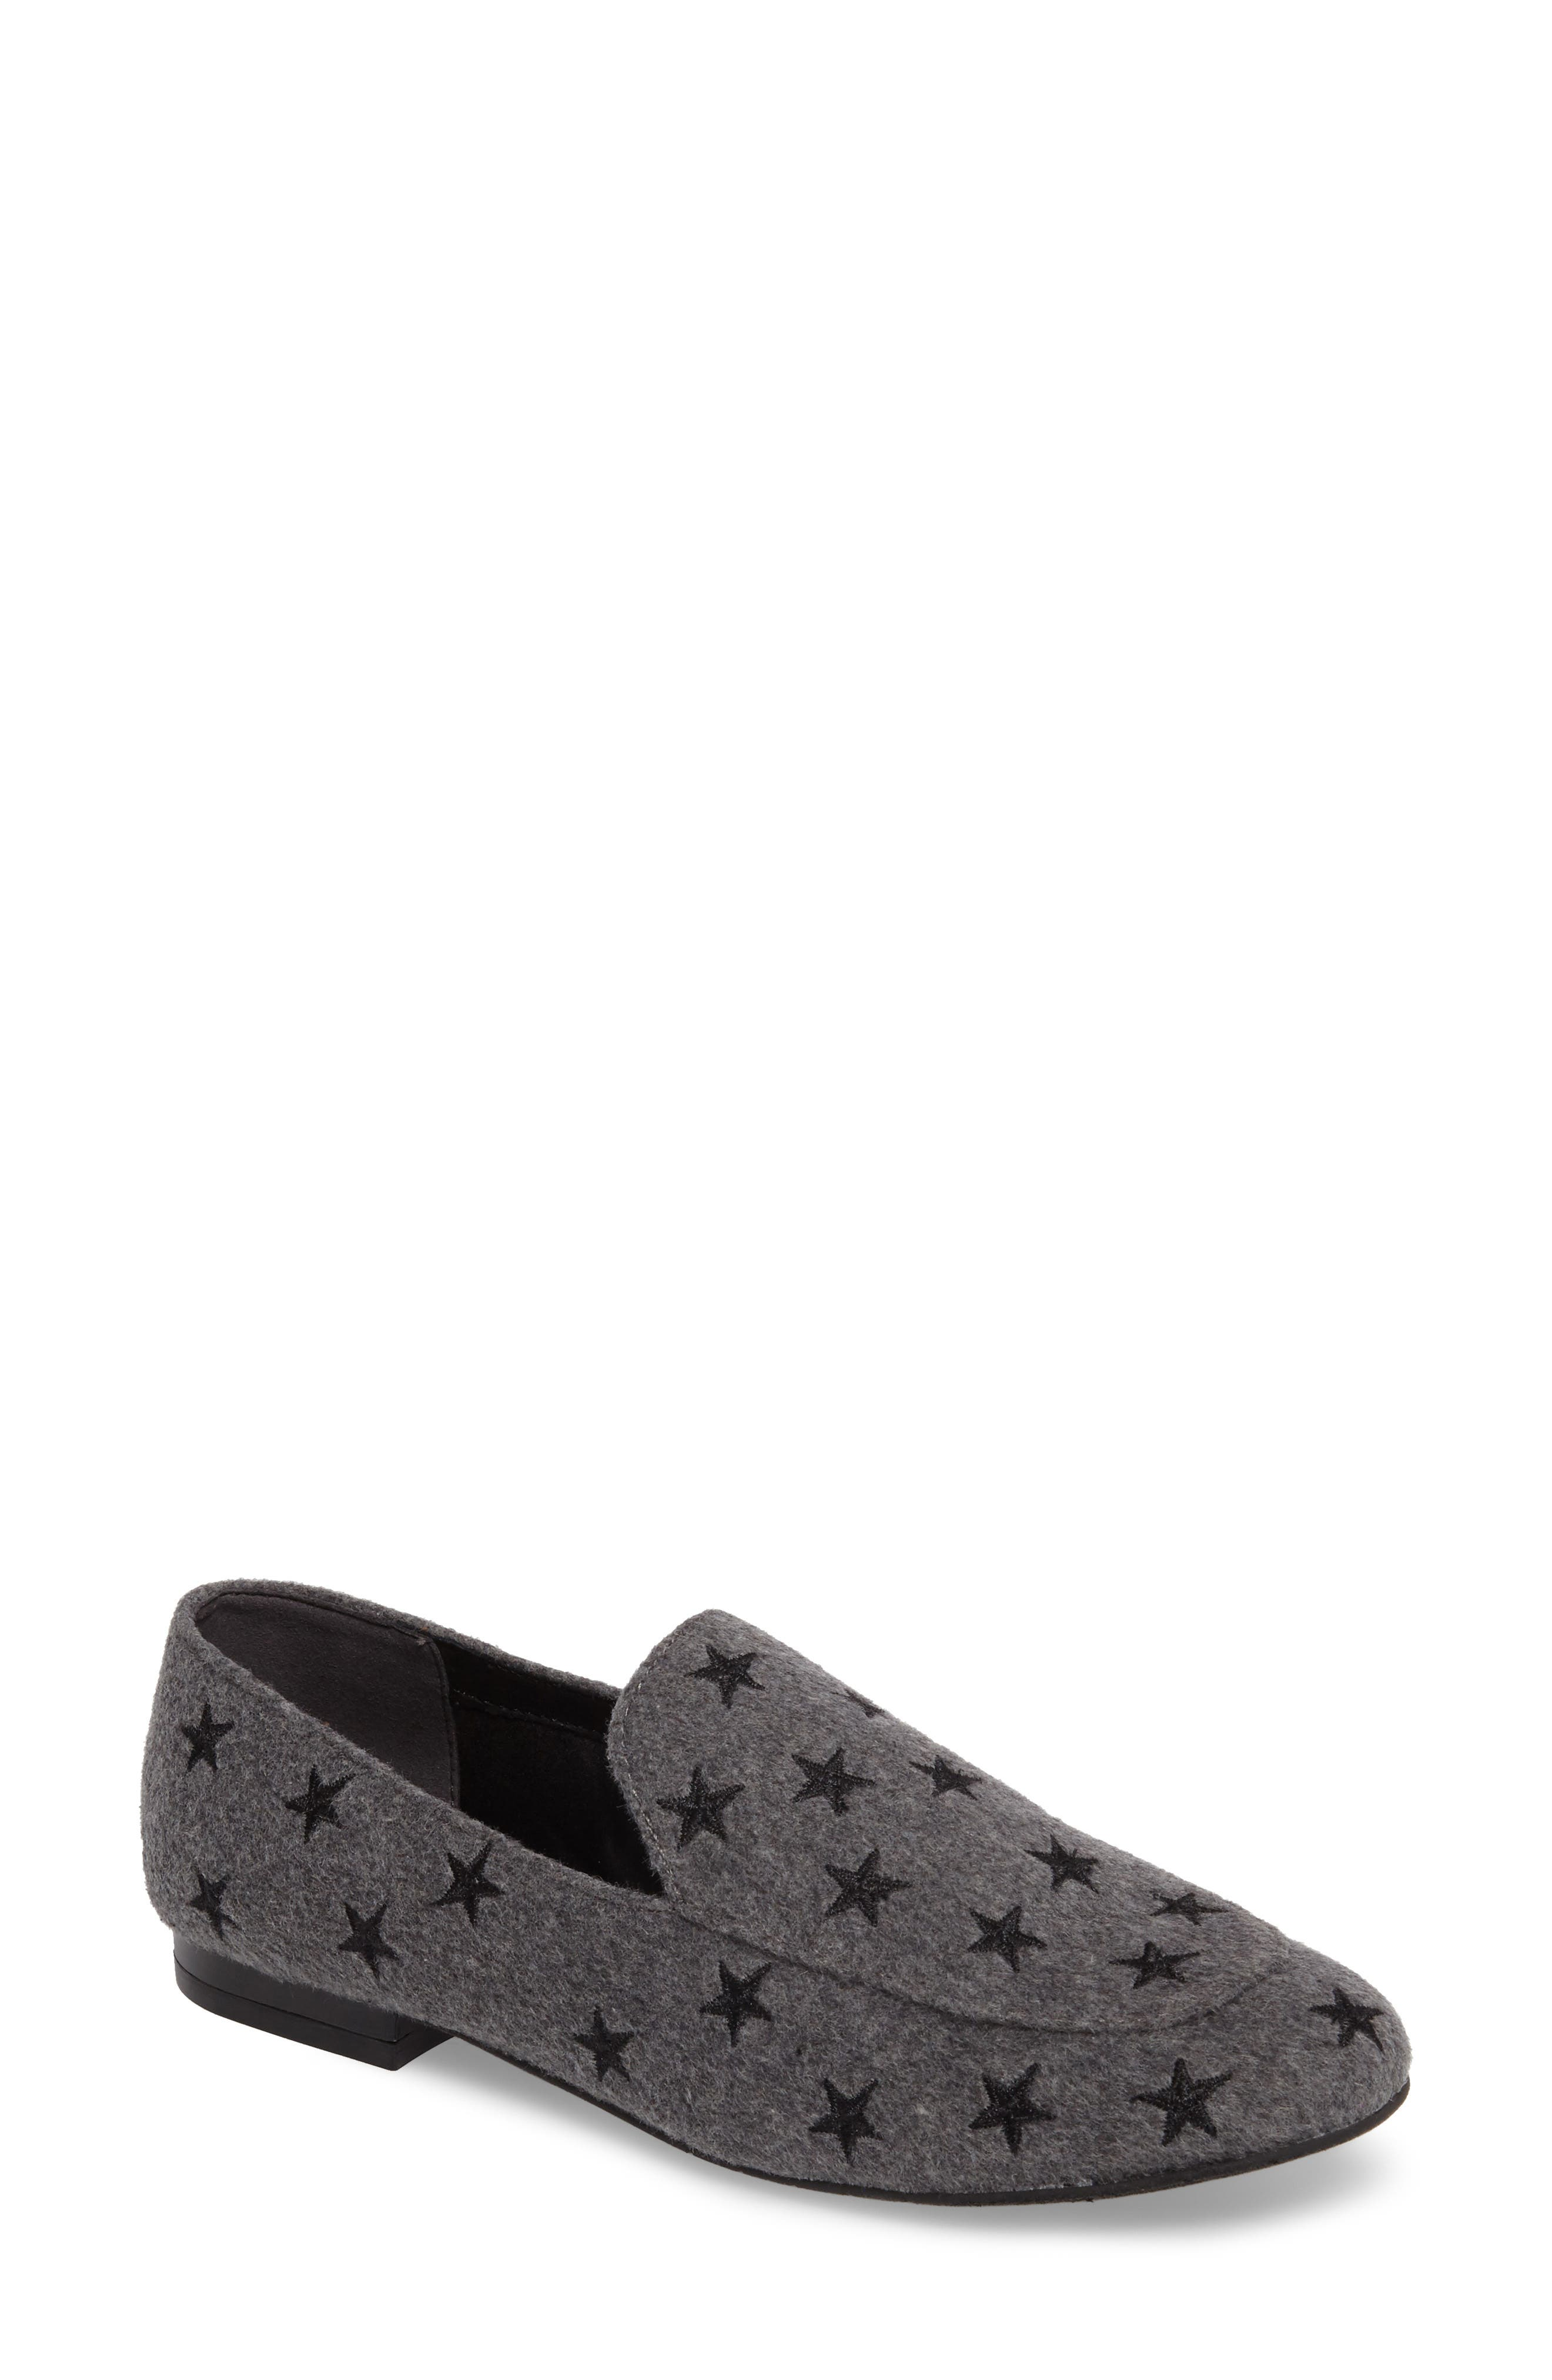 Westley 5 Loafer,                             Main thumbnail 1, color,